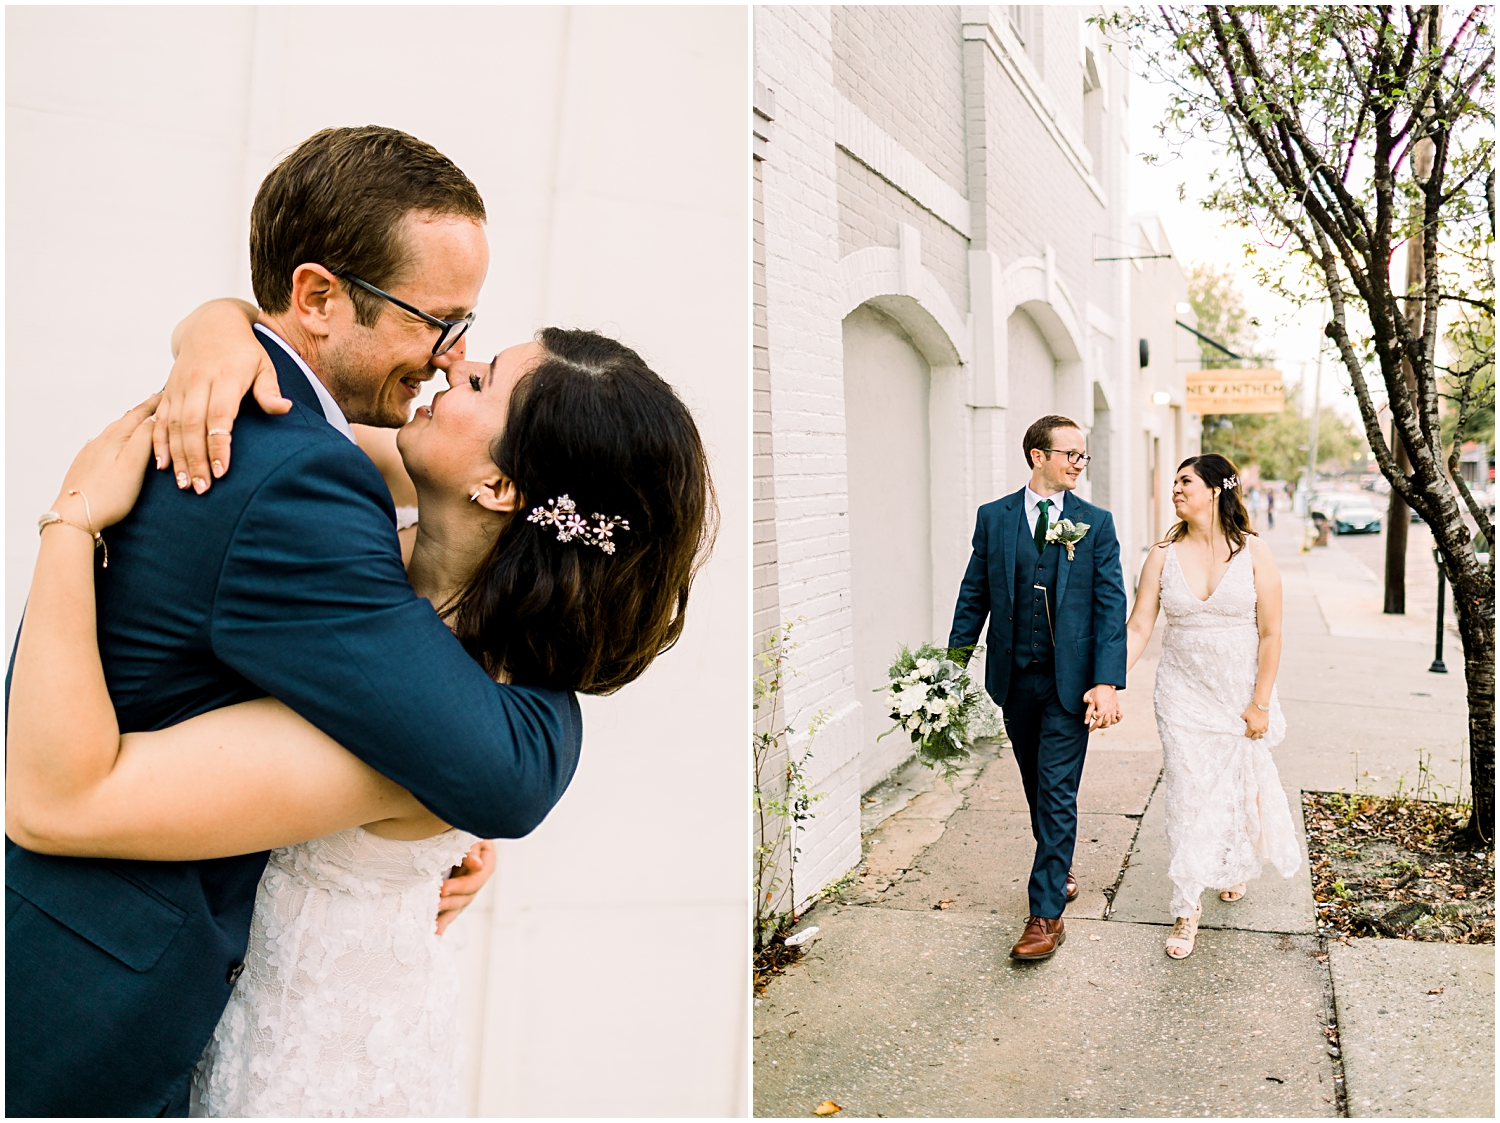 The Atrium, Downtown Wilmington NC Wedding_Erin L. Taylor Photography_0050.jpg